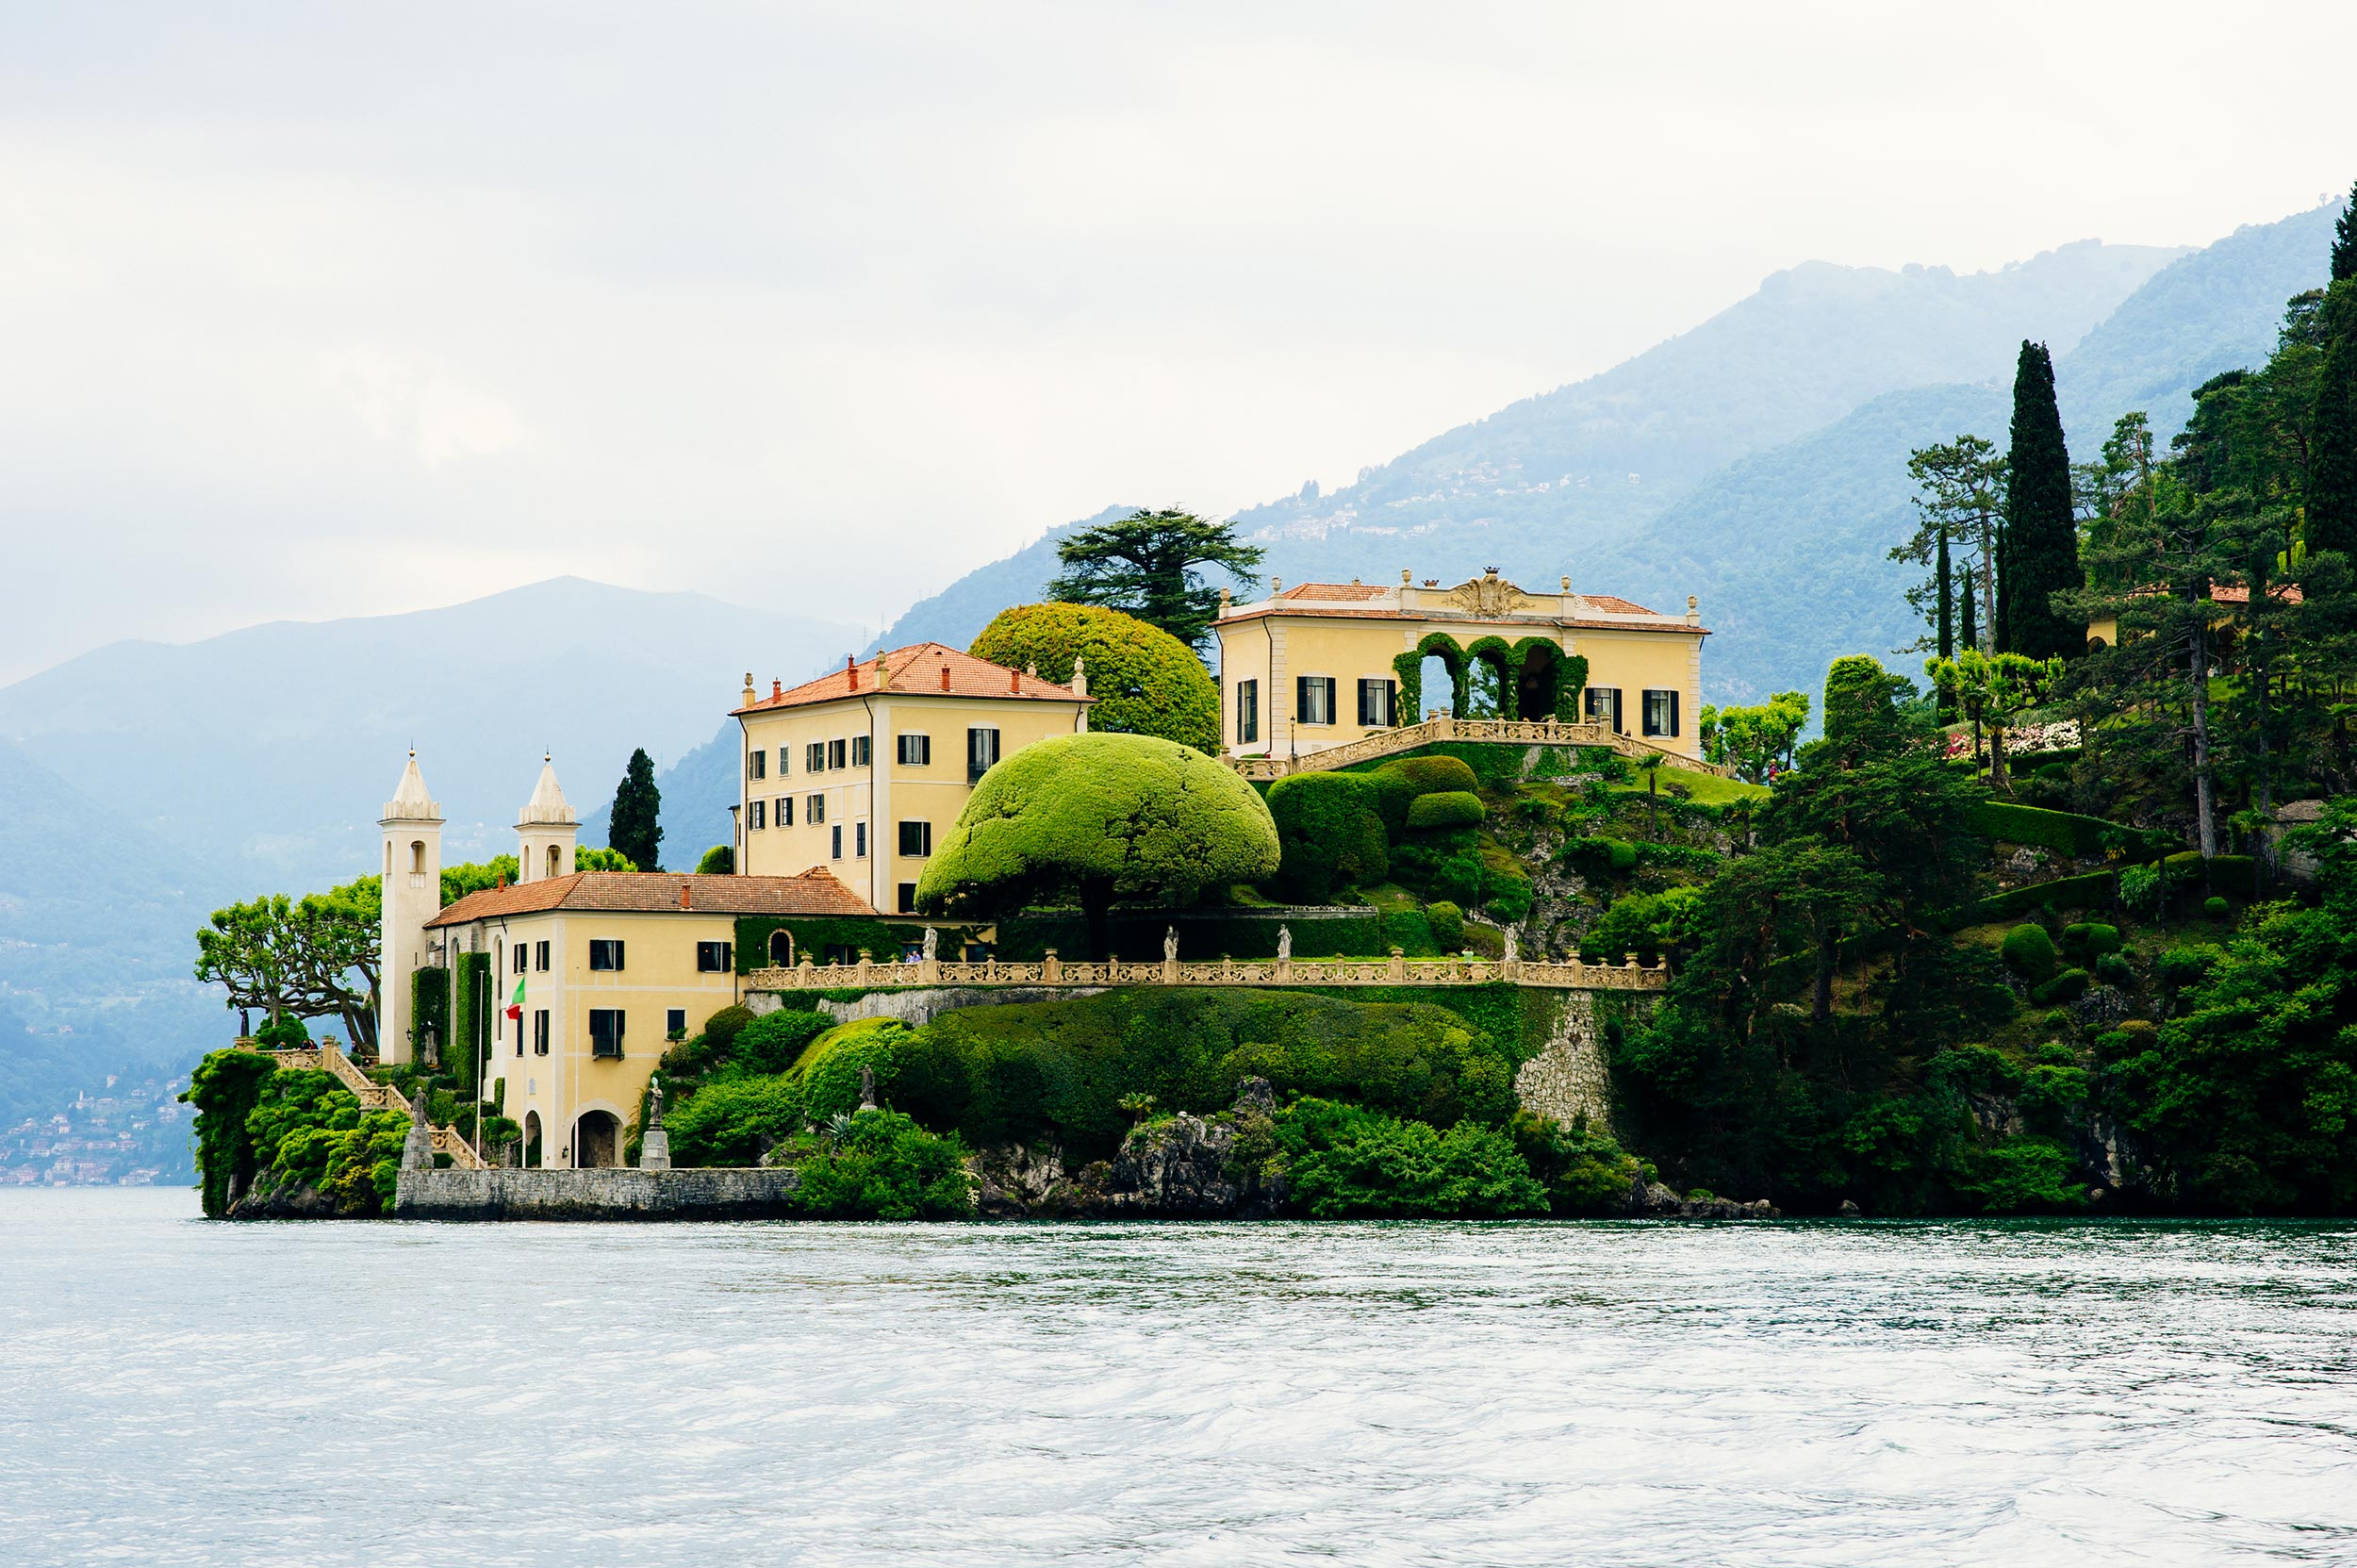 2015-Jon-Lauren-Bellagio-Lake-Como-Wedding-Photographer-Italy-Alessandro-Avenali-17.jpg